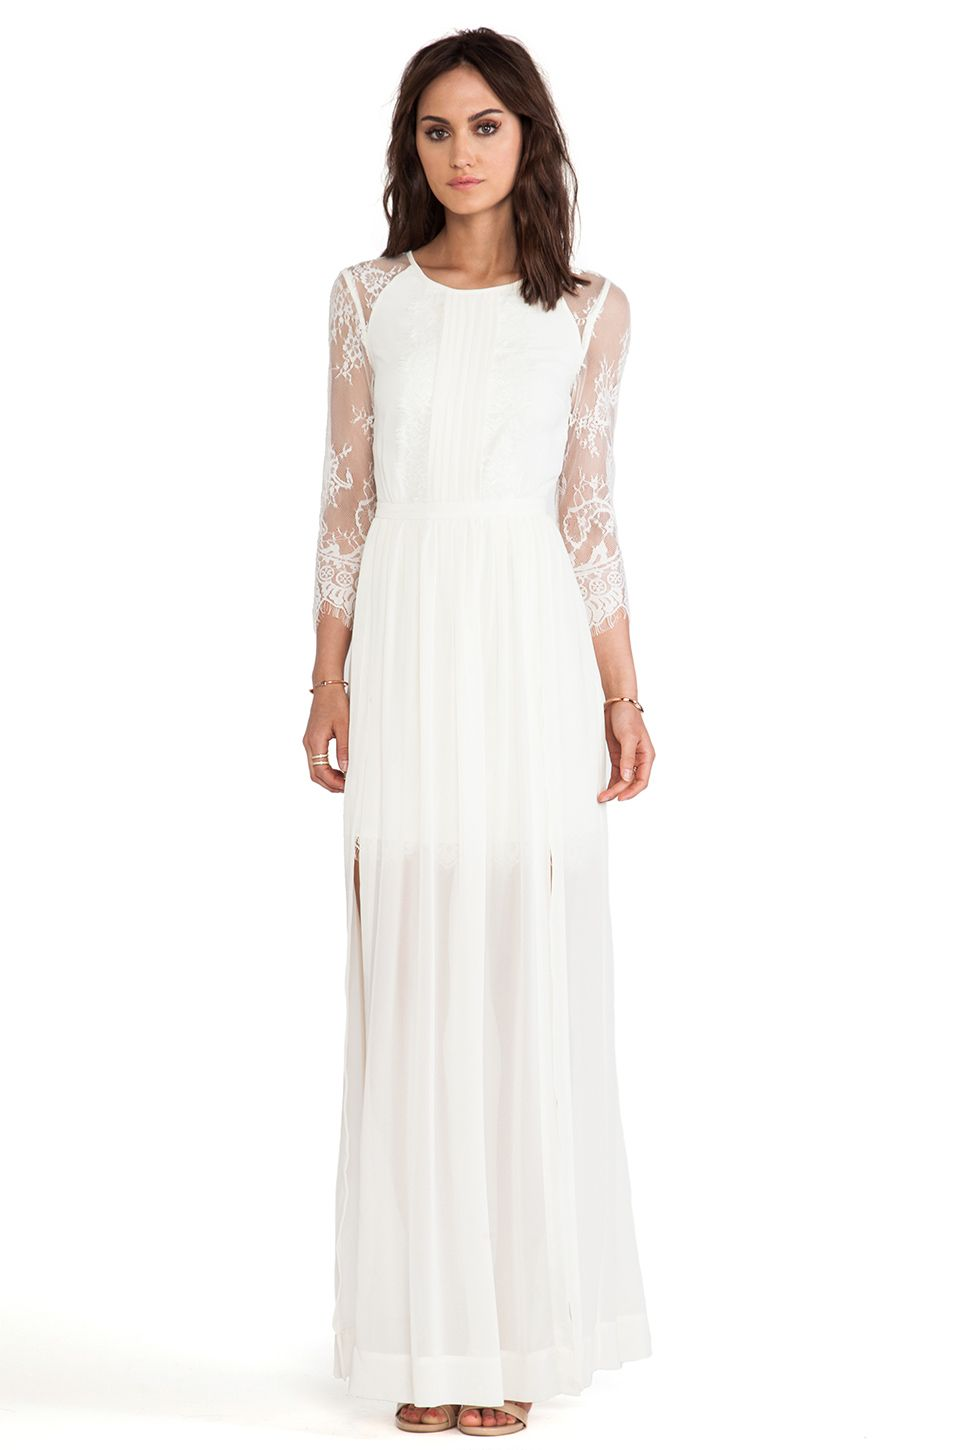 Alice by temperley long hemingway lace back dress style